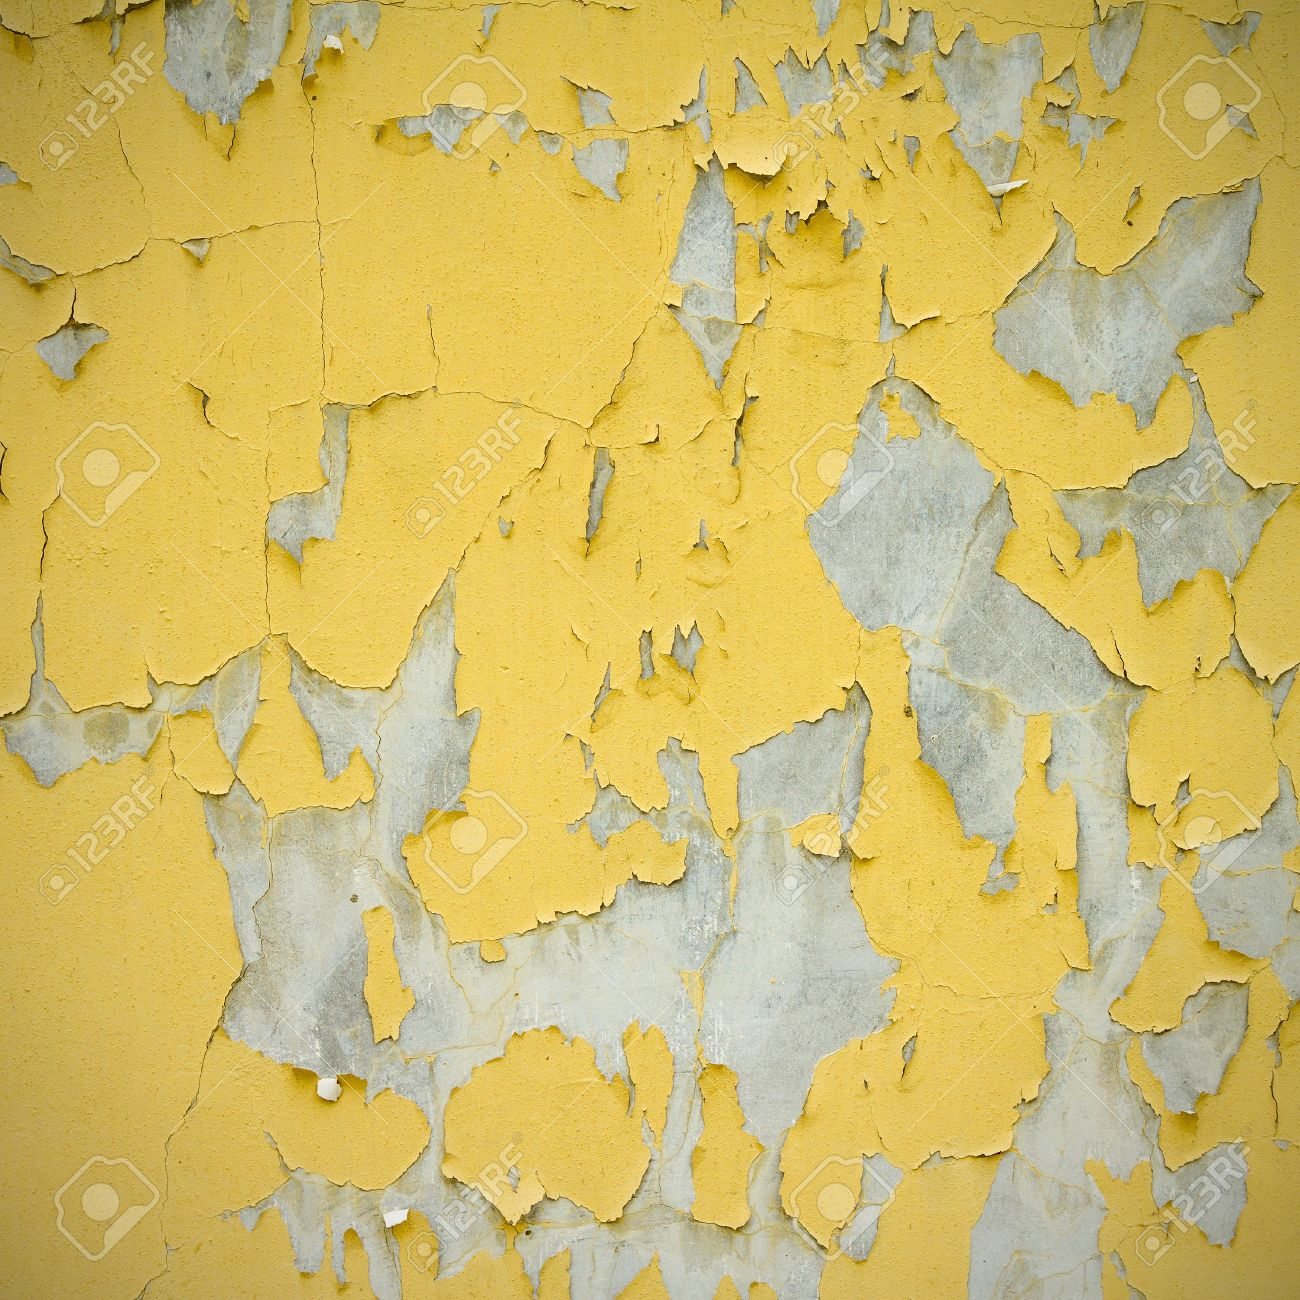 Famous How To Paint Old Walls Ensign - Wall Art Ideas - dochista.info